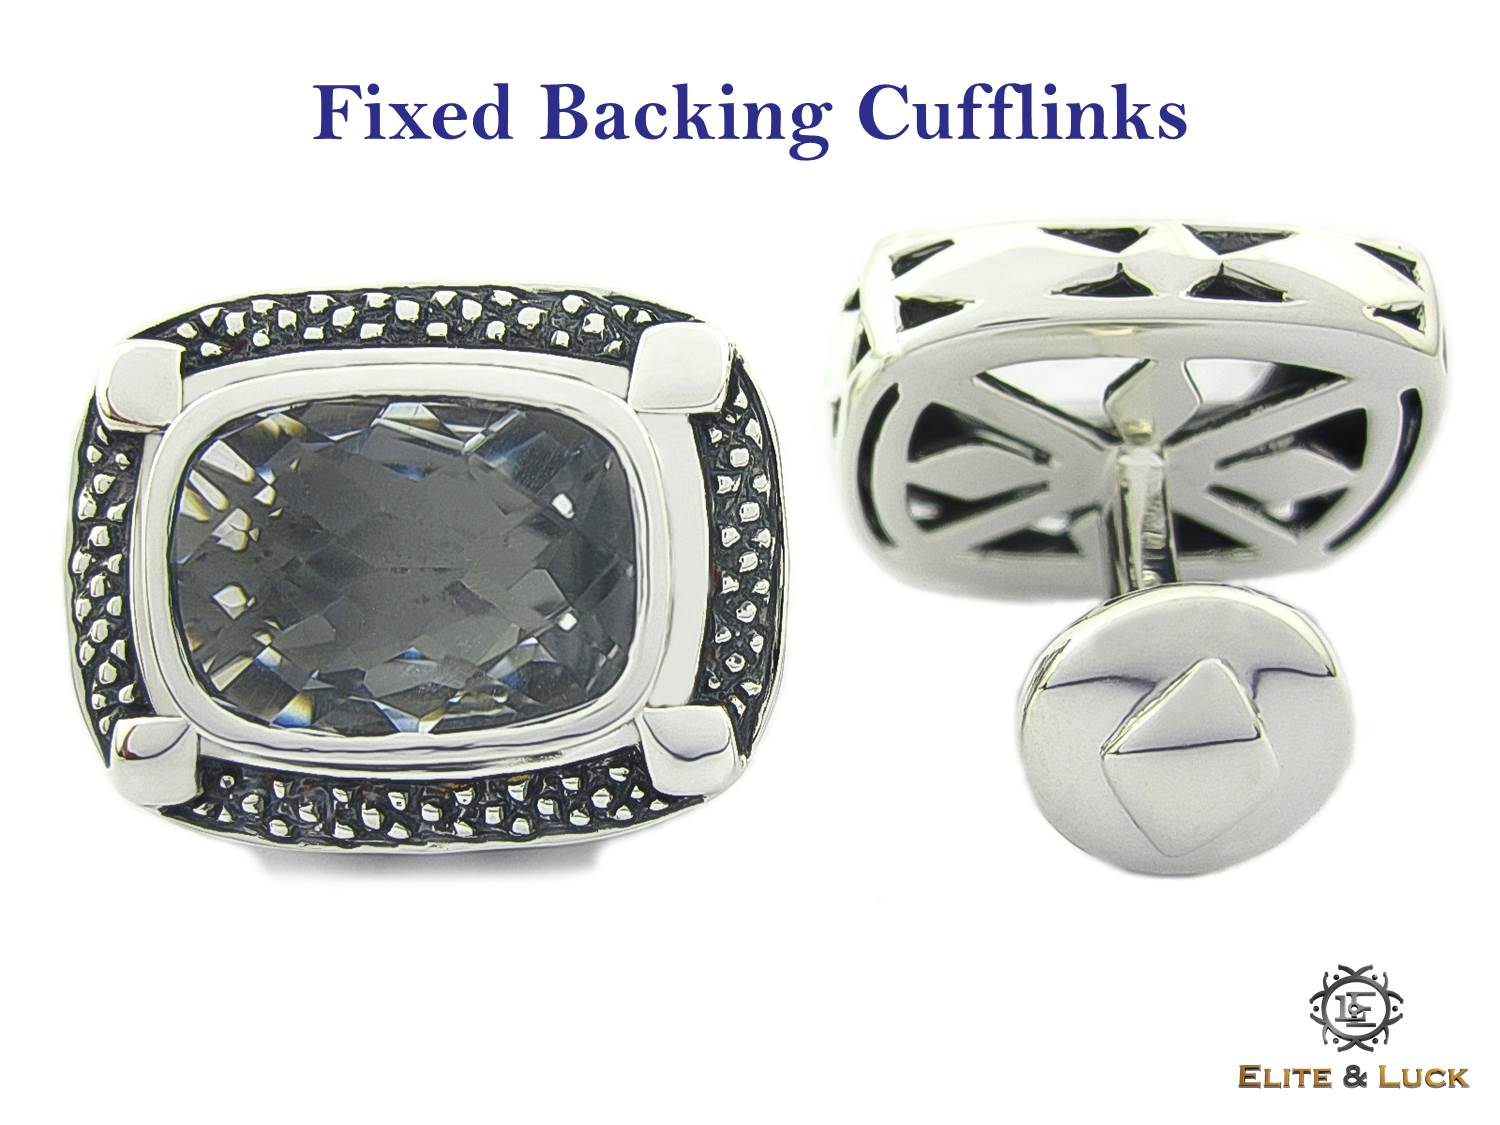 Fixed Backing Cufflinks